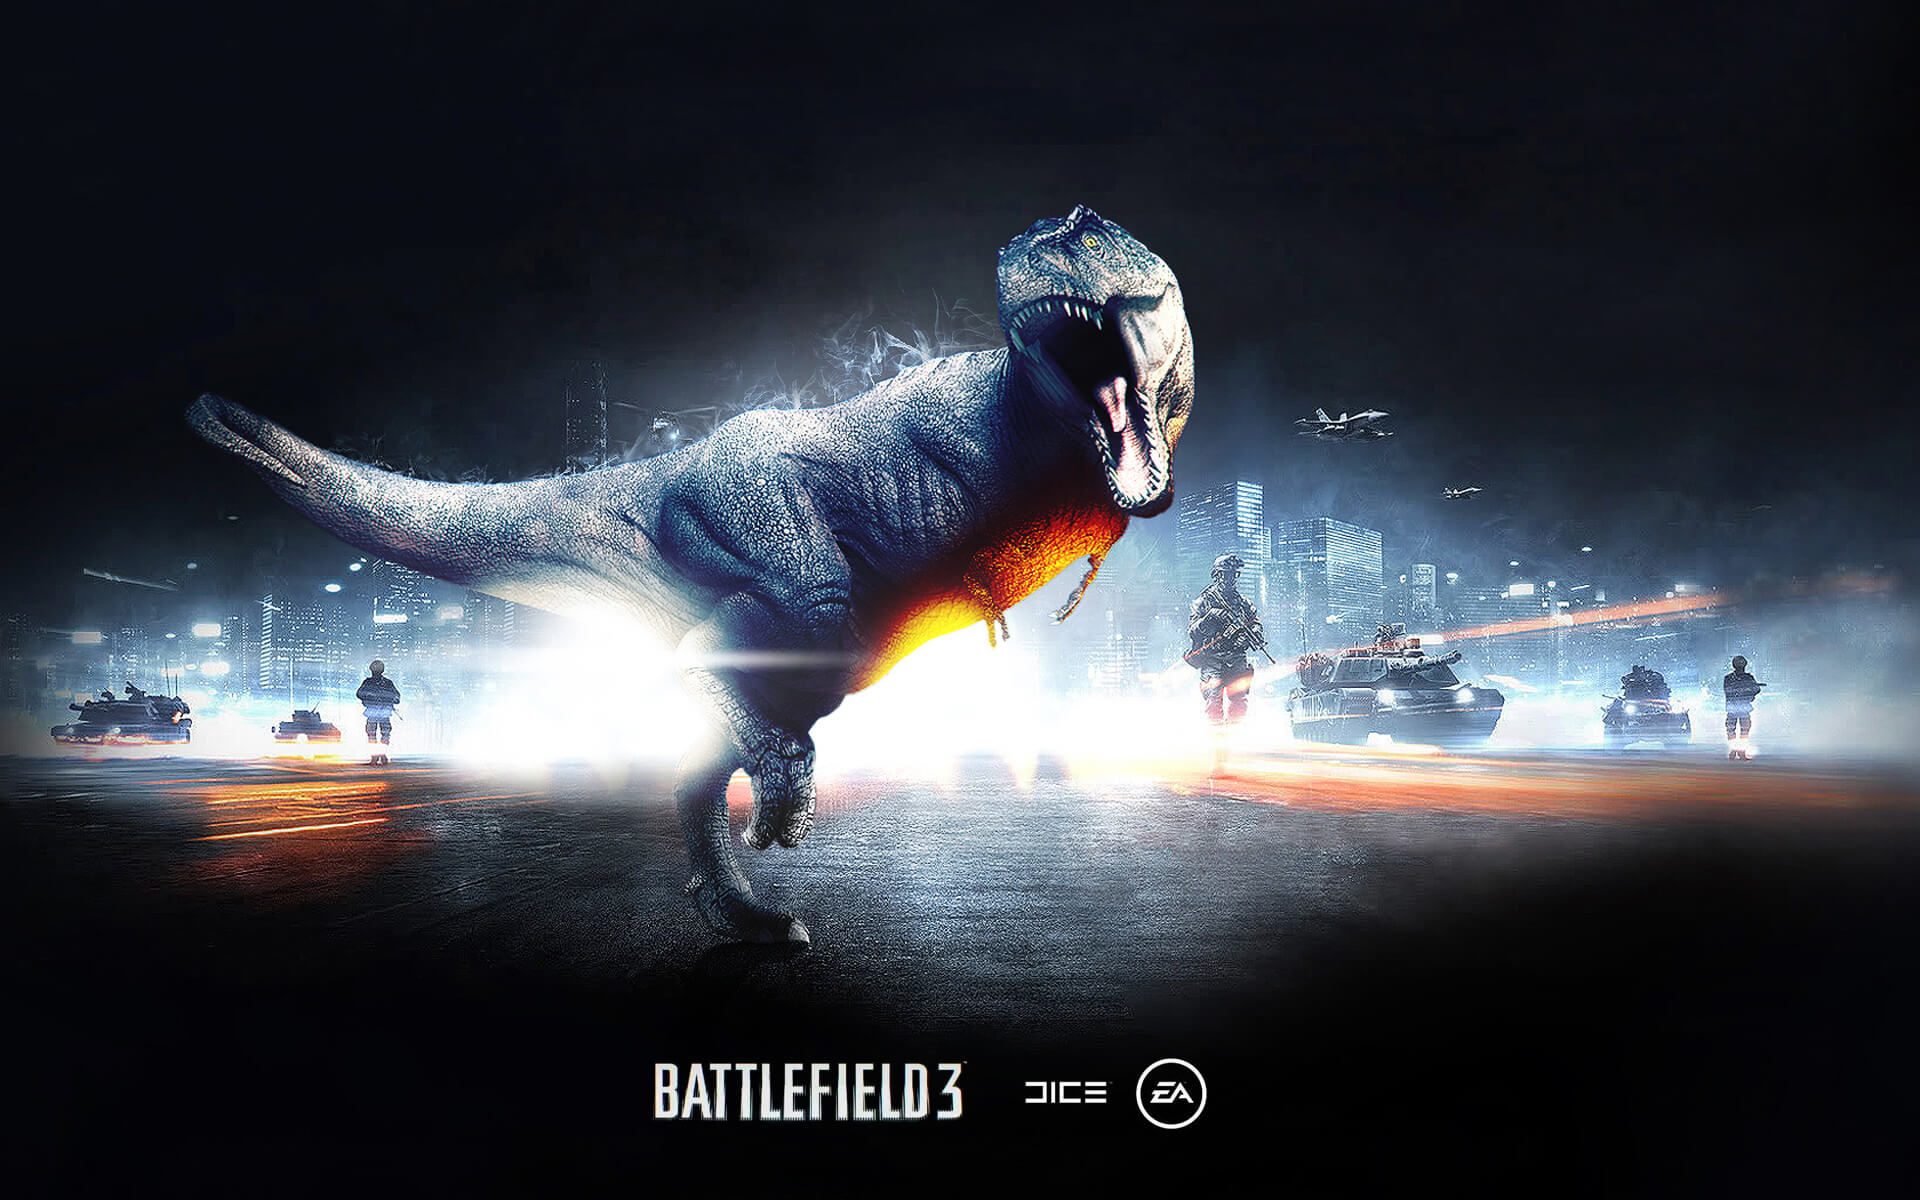 Dinosaur Teases Don't Make Up For 'Battlefield 4' Issues